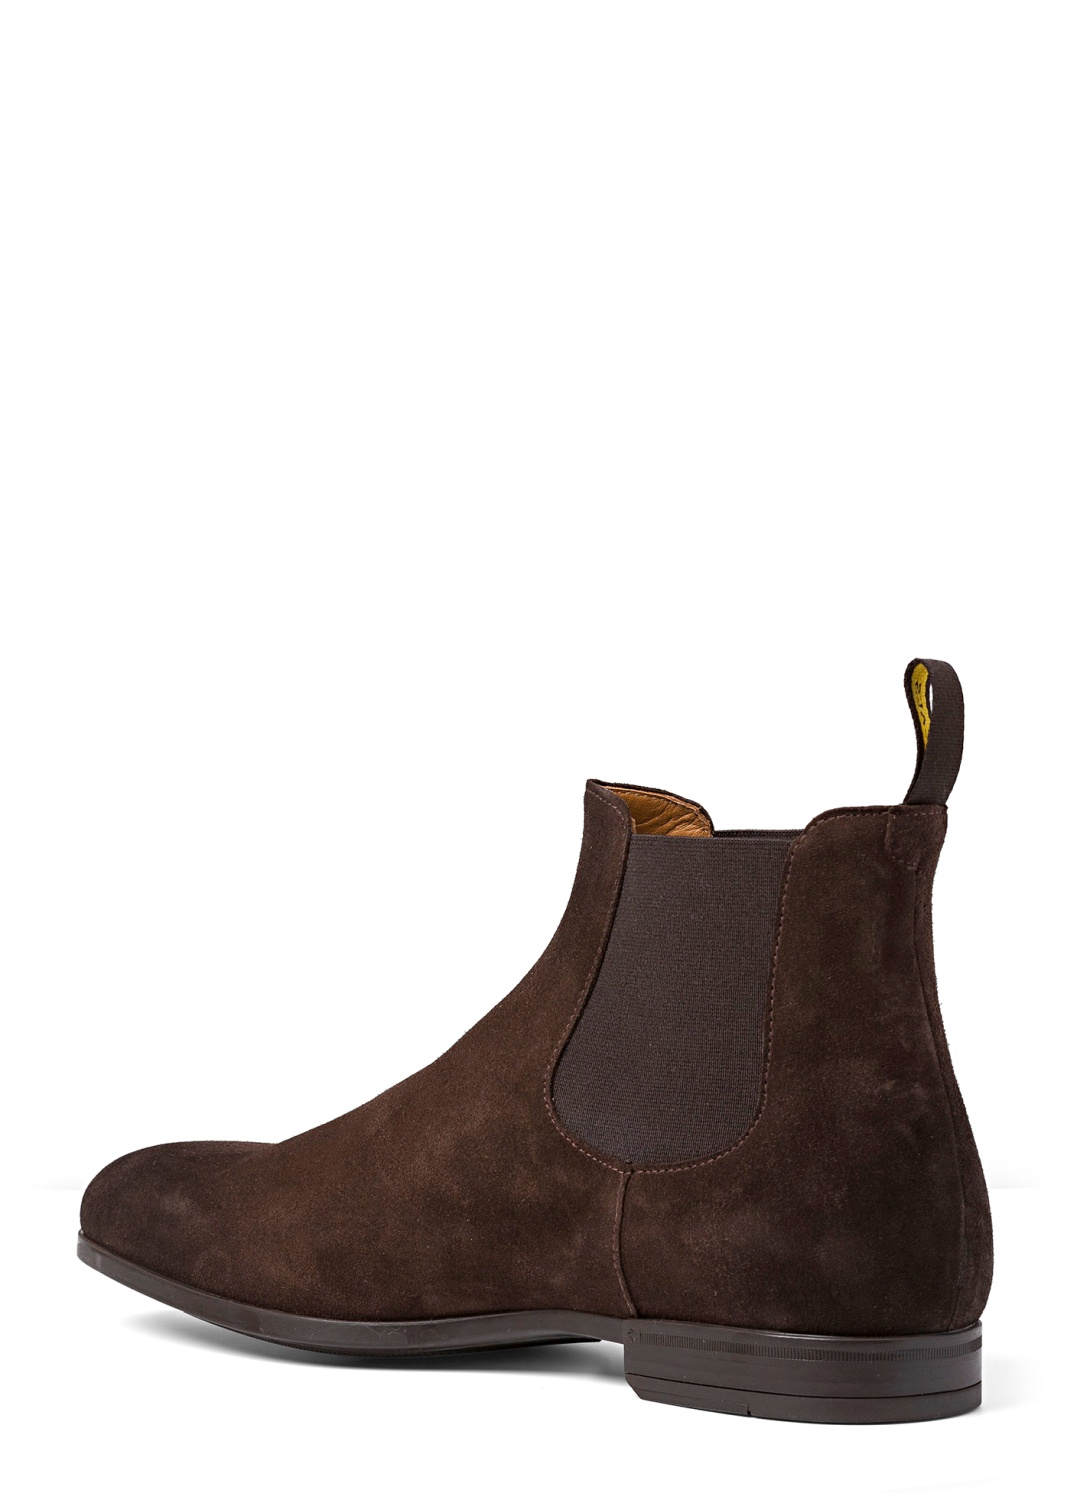 CHELSEA BOOT image number 2